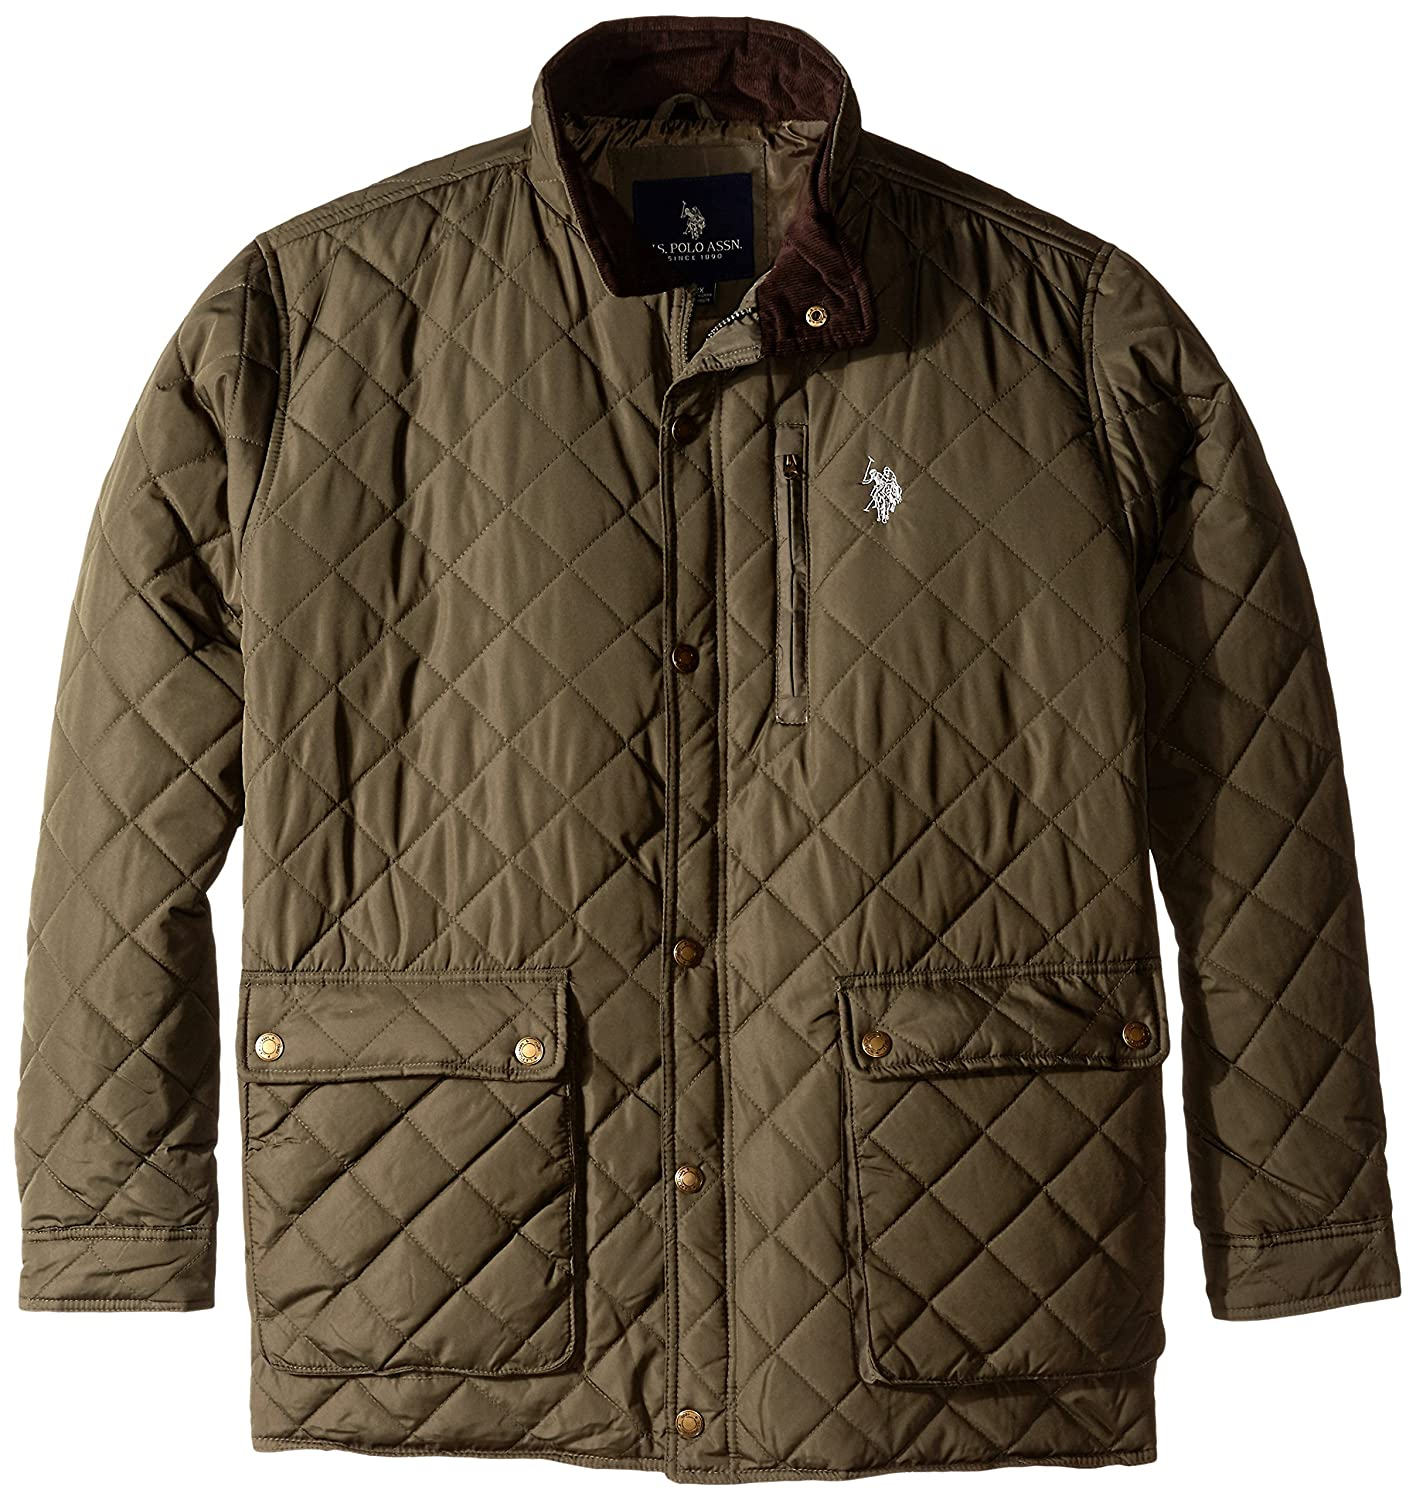 U.S. Polo Assn. OUTERWEAR メンズ B0106USLZO 2X|Forest Night-ggfh Forest Night-ggfh 2X